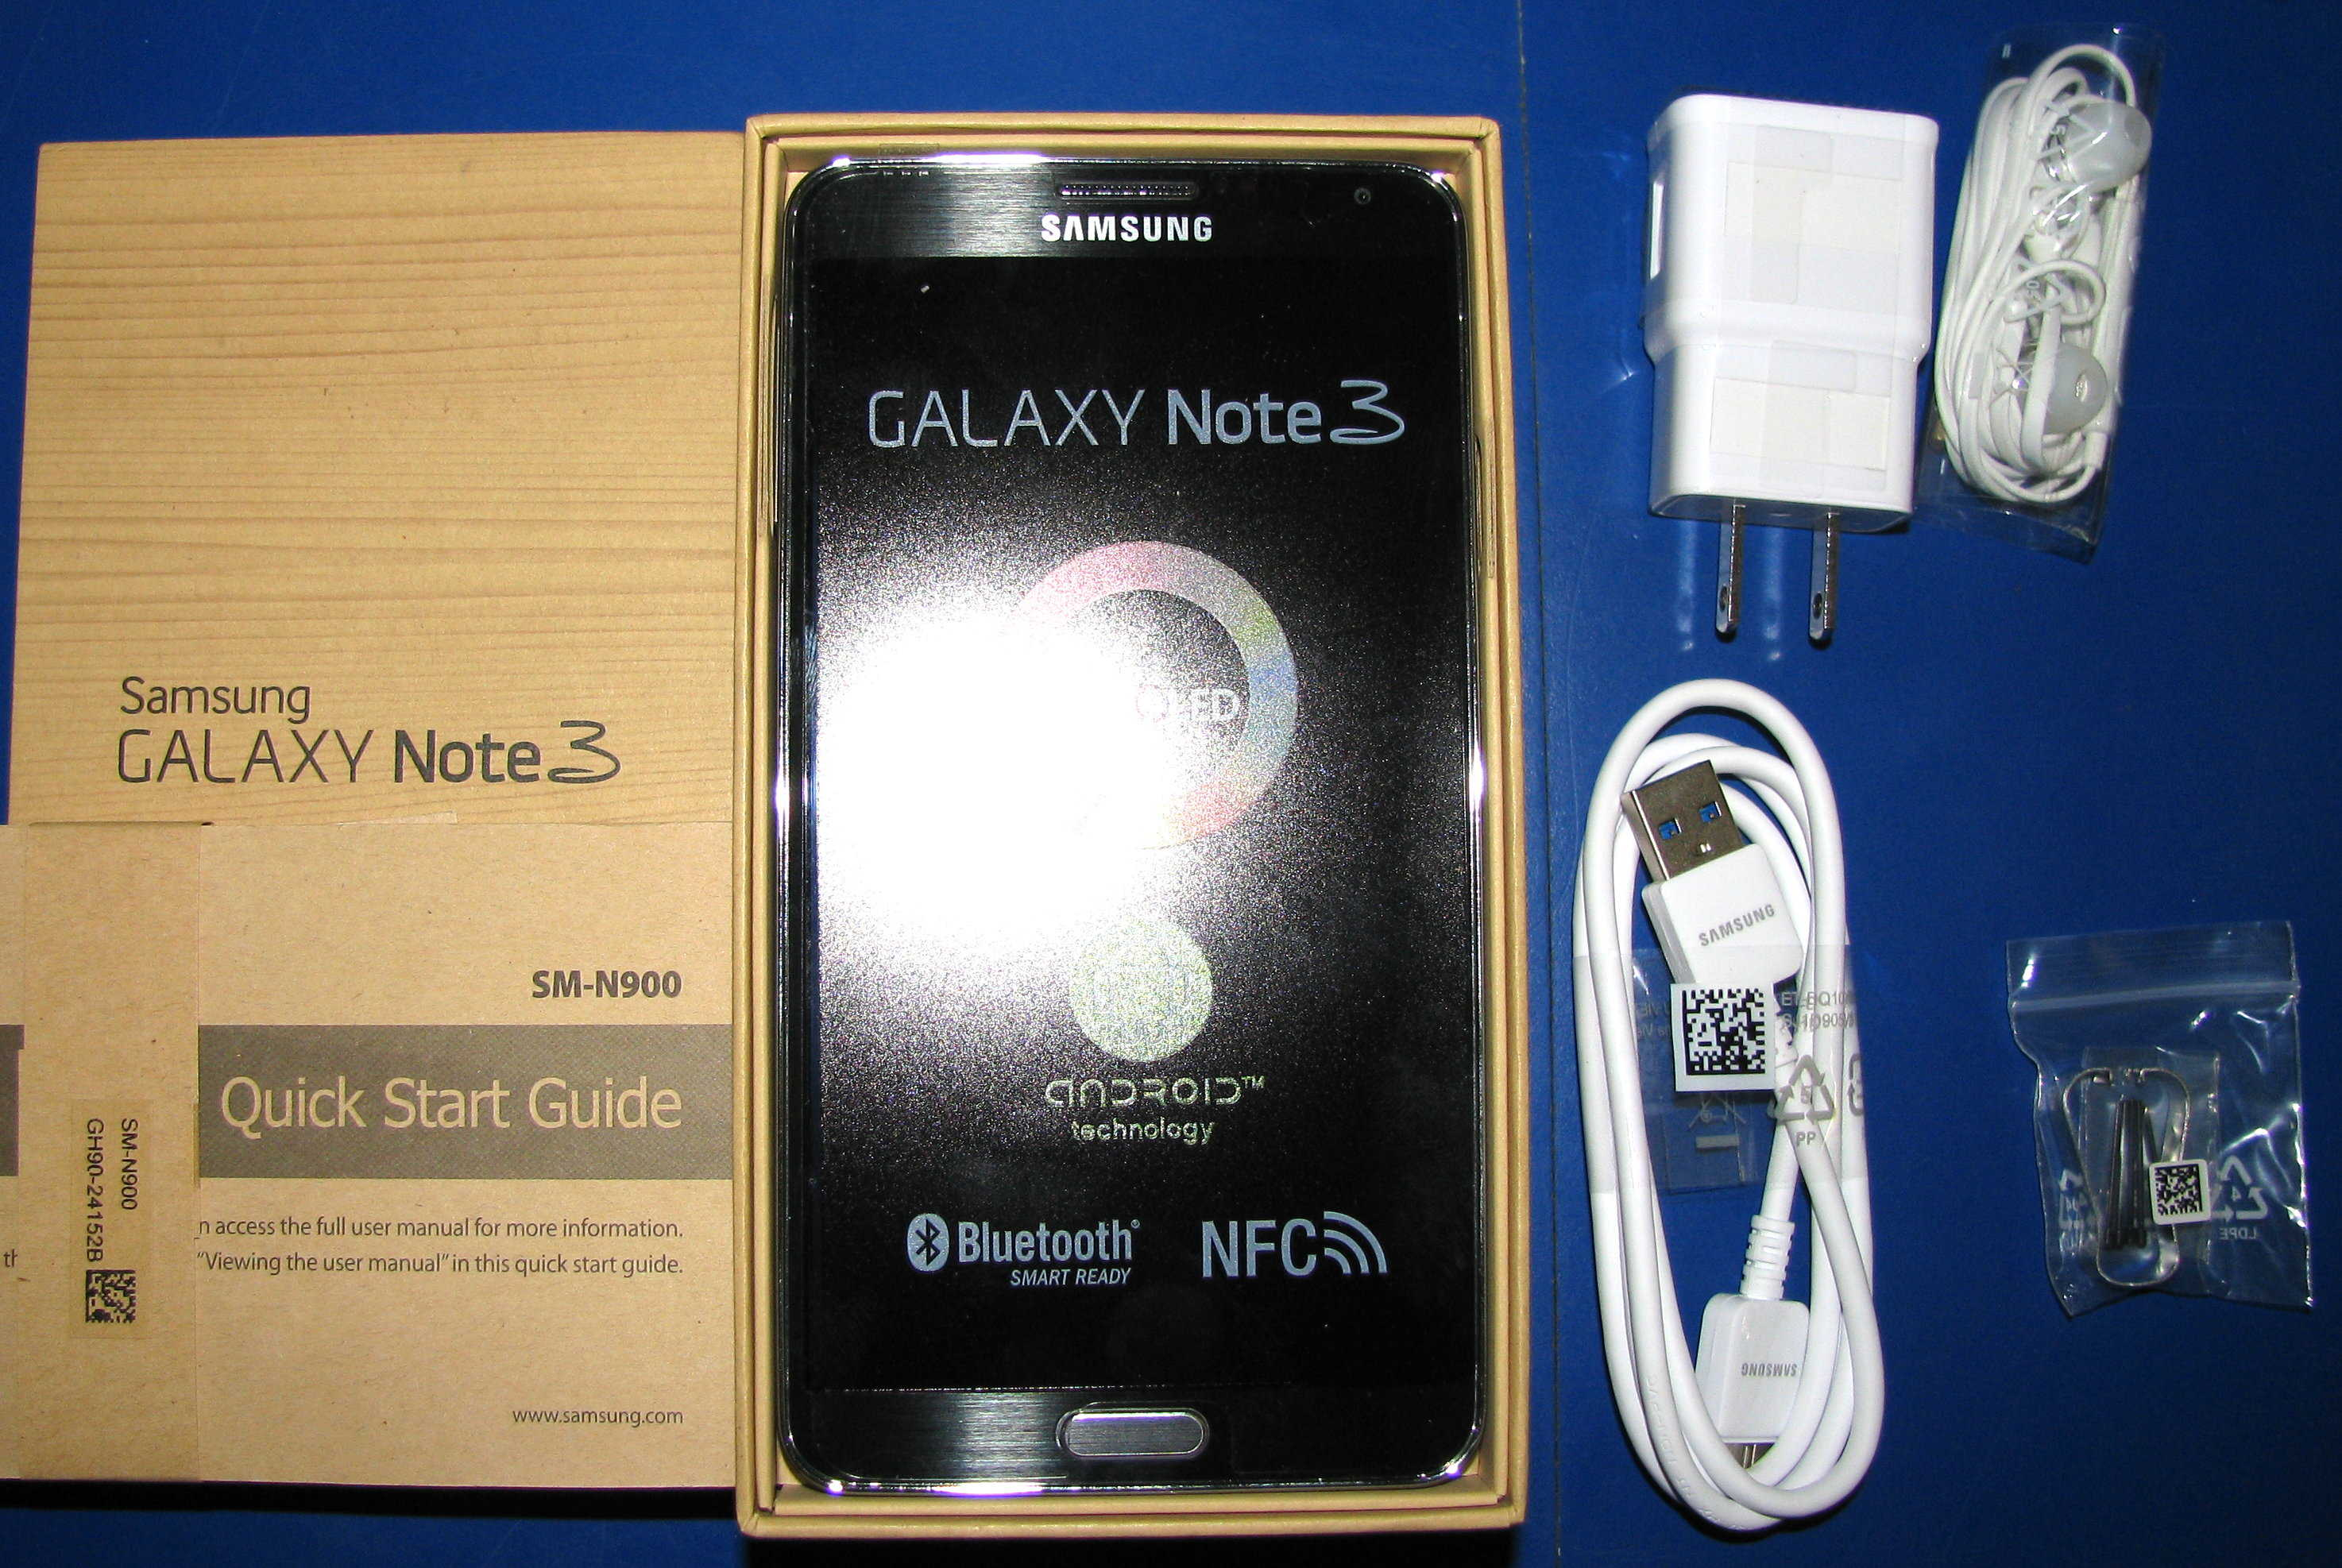 Samsung Galaxy Note 3 06